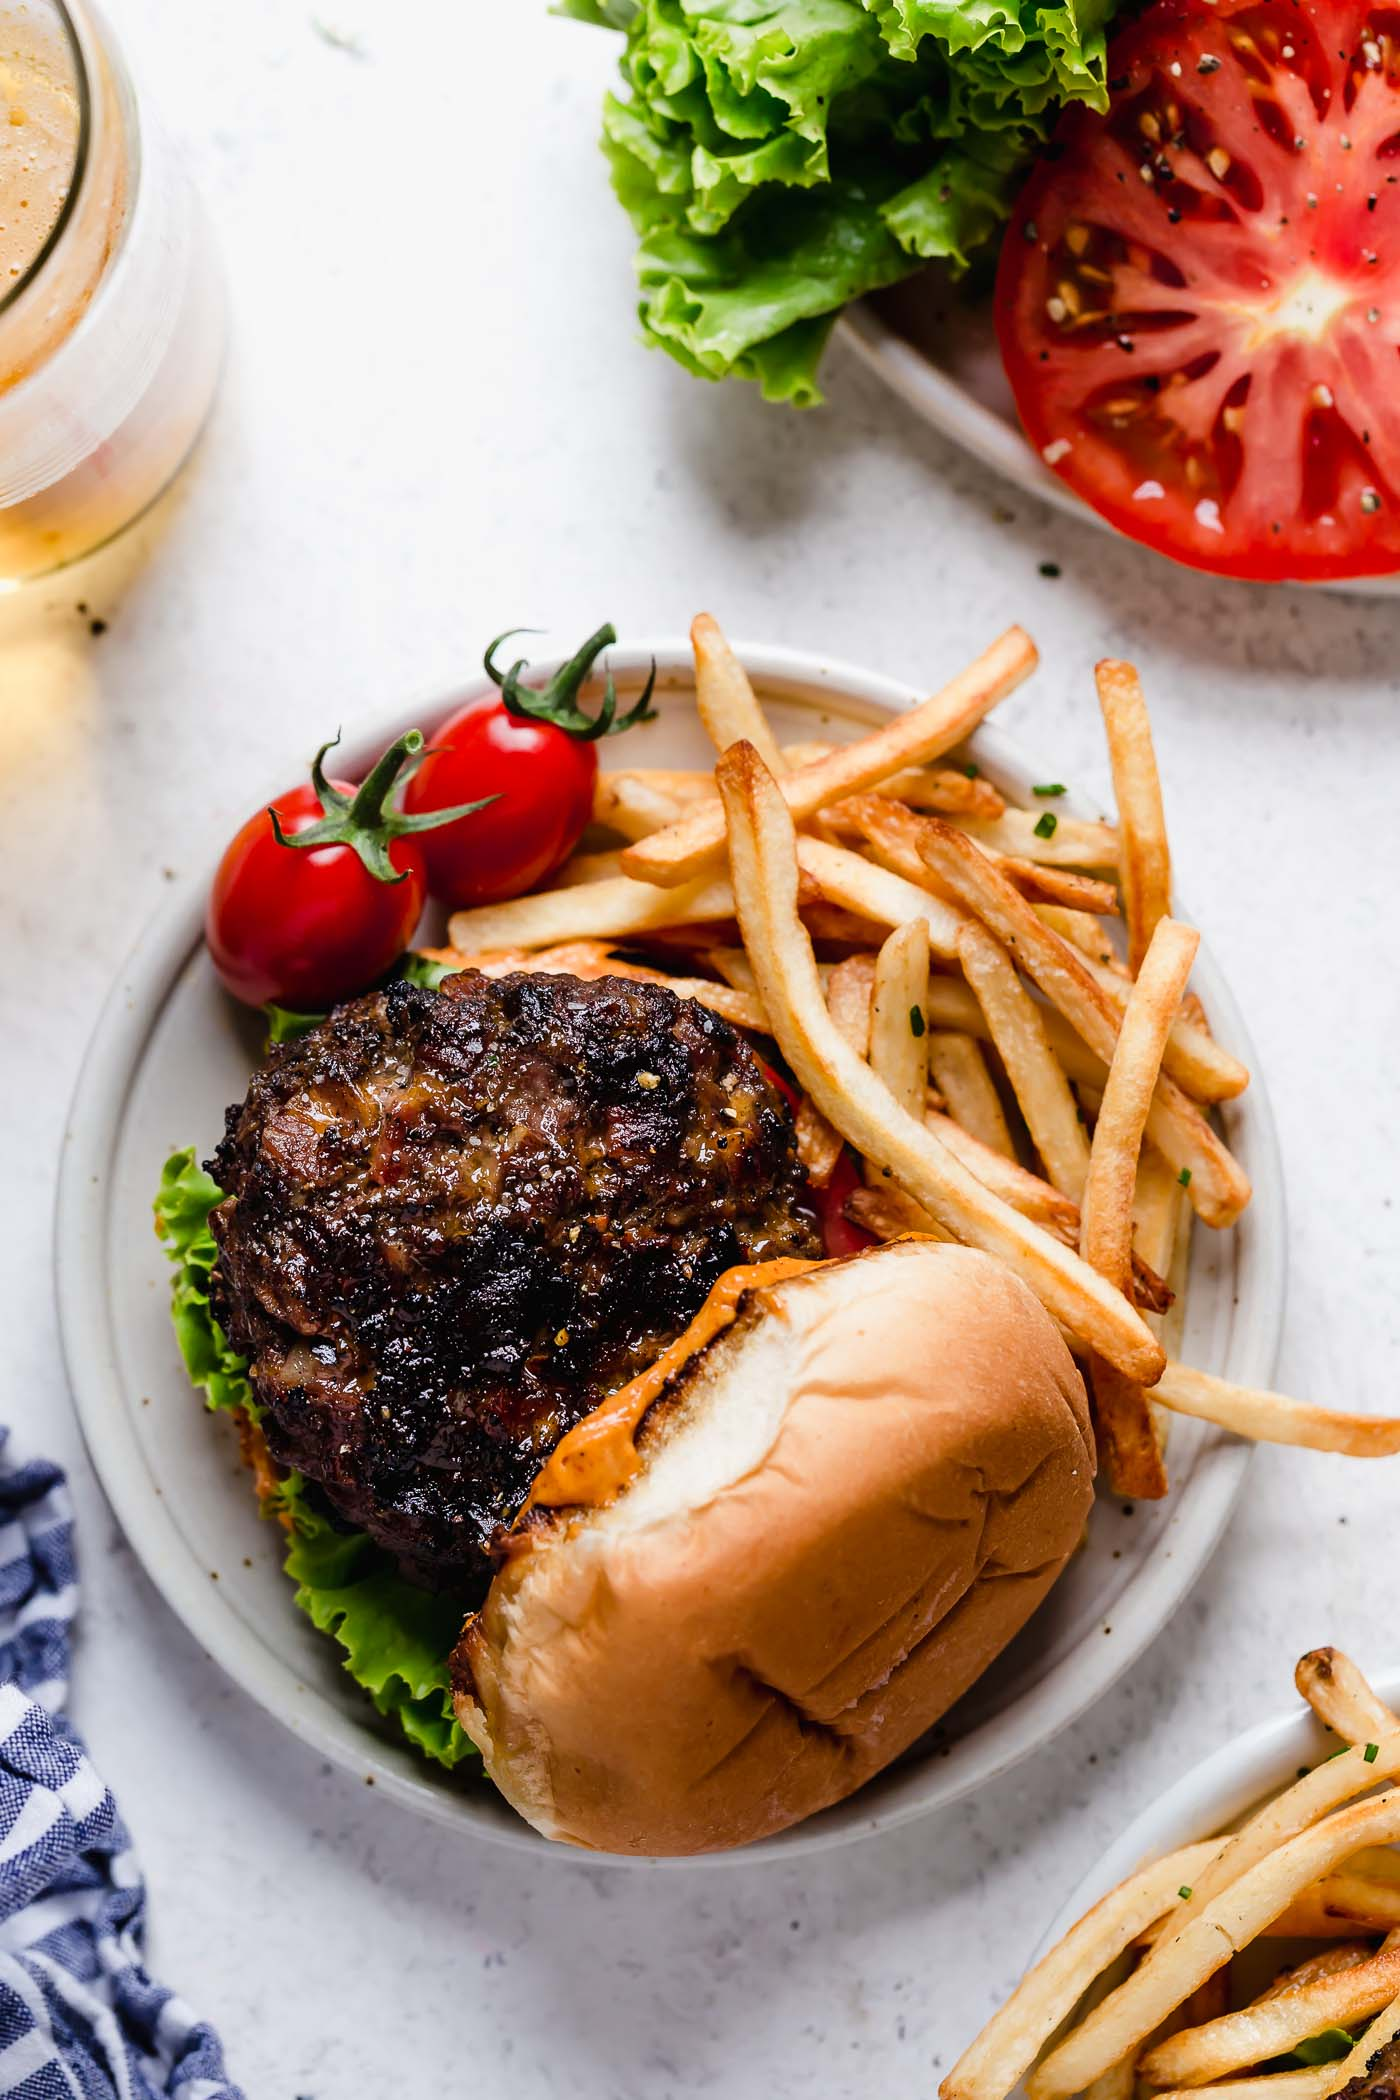 bacon cheddar stuffed burger served on a bun with french fries next to another plated burger, plated burger toppings & a ice cold beer.